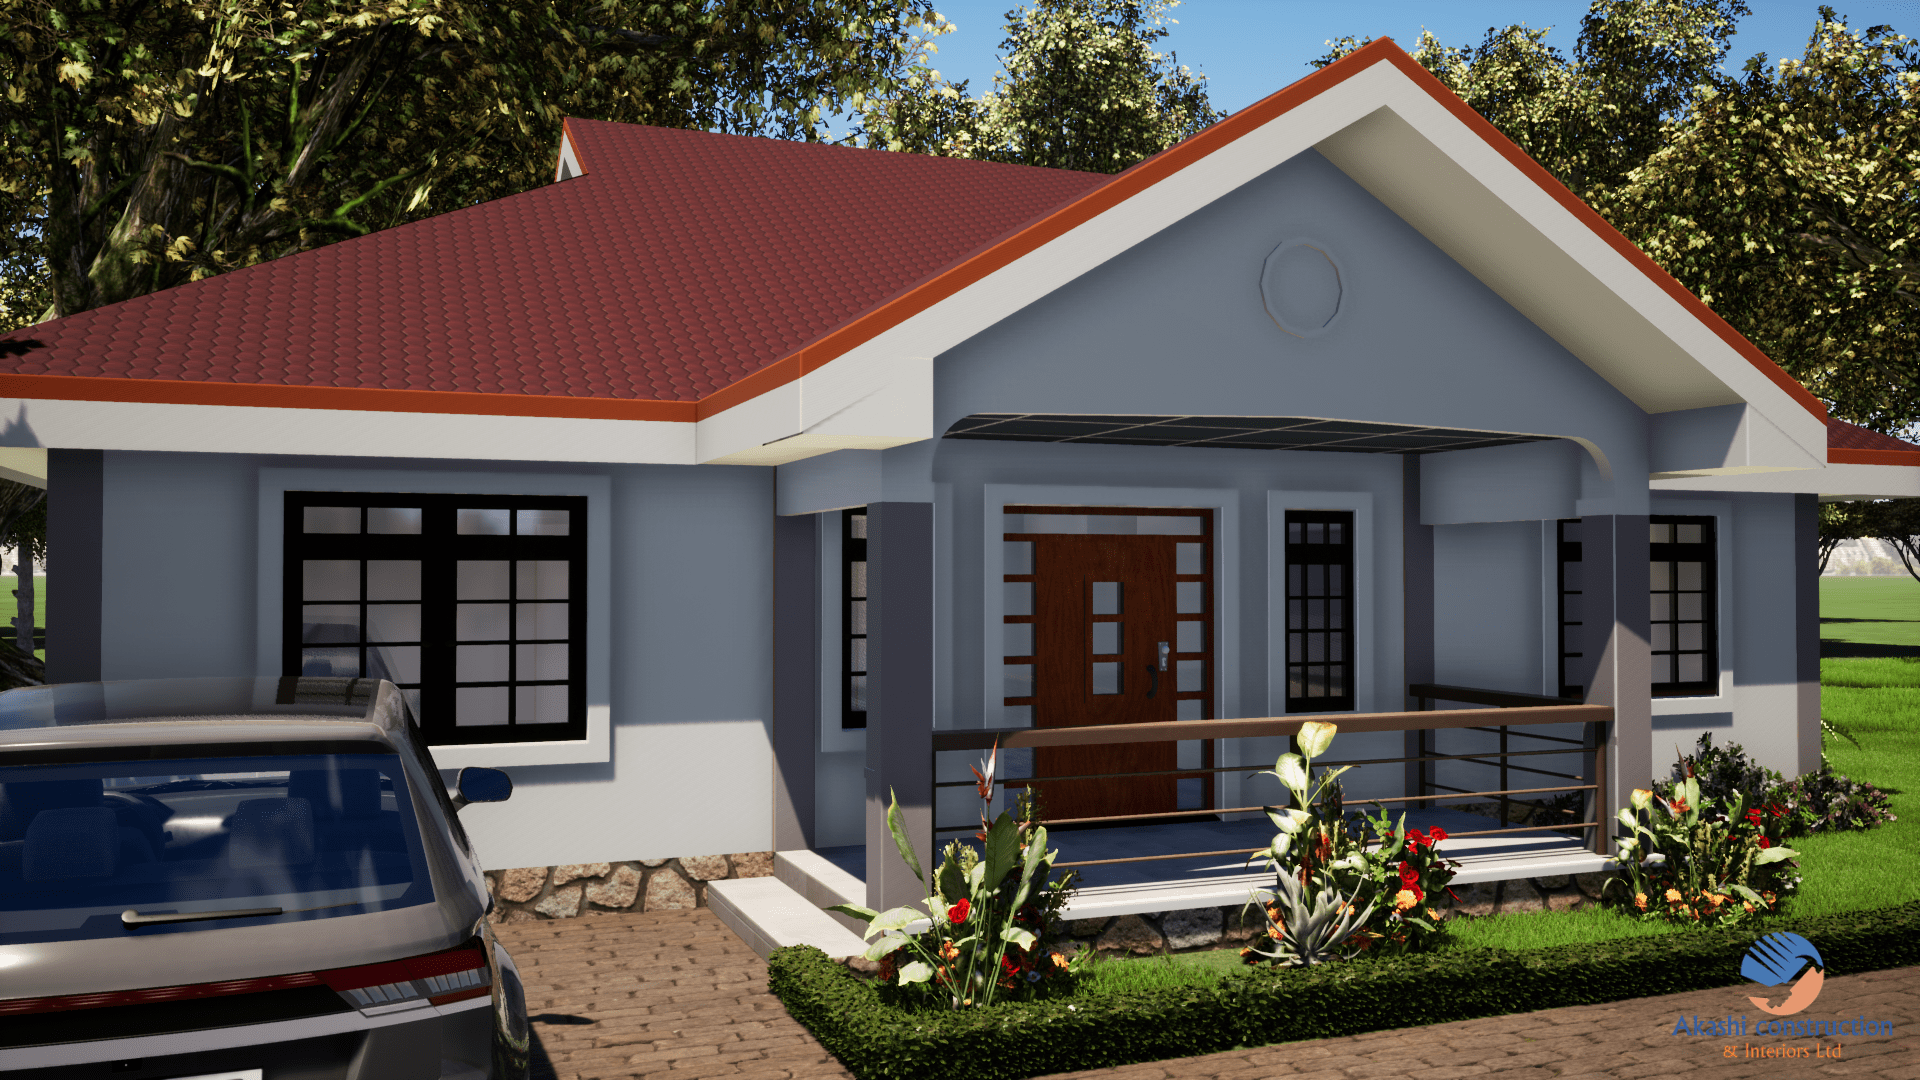 3 Bedroom House Plan With Master Ensuite Bedroom House Plans Architectural House Plans Small Cottage House Plans